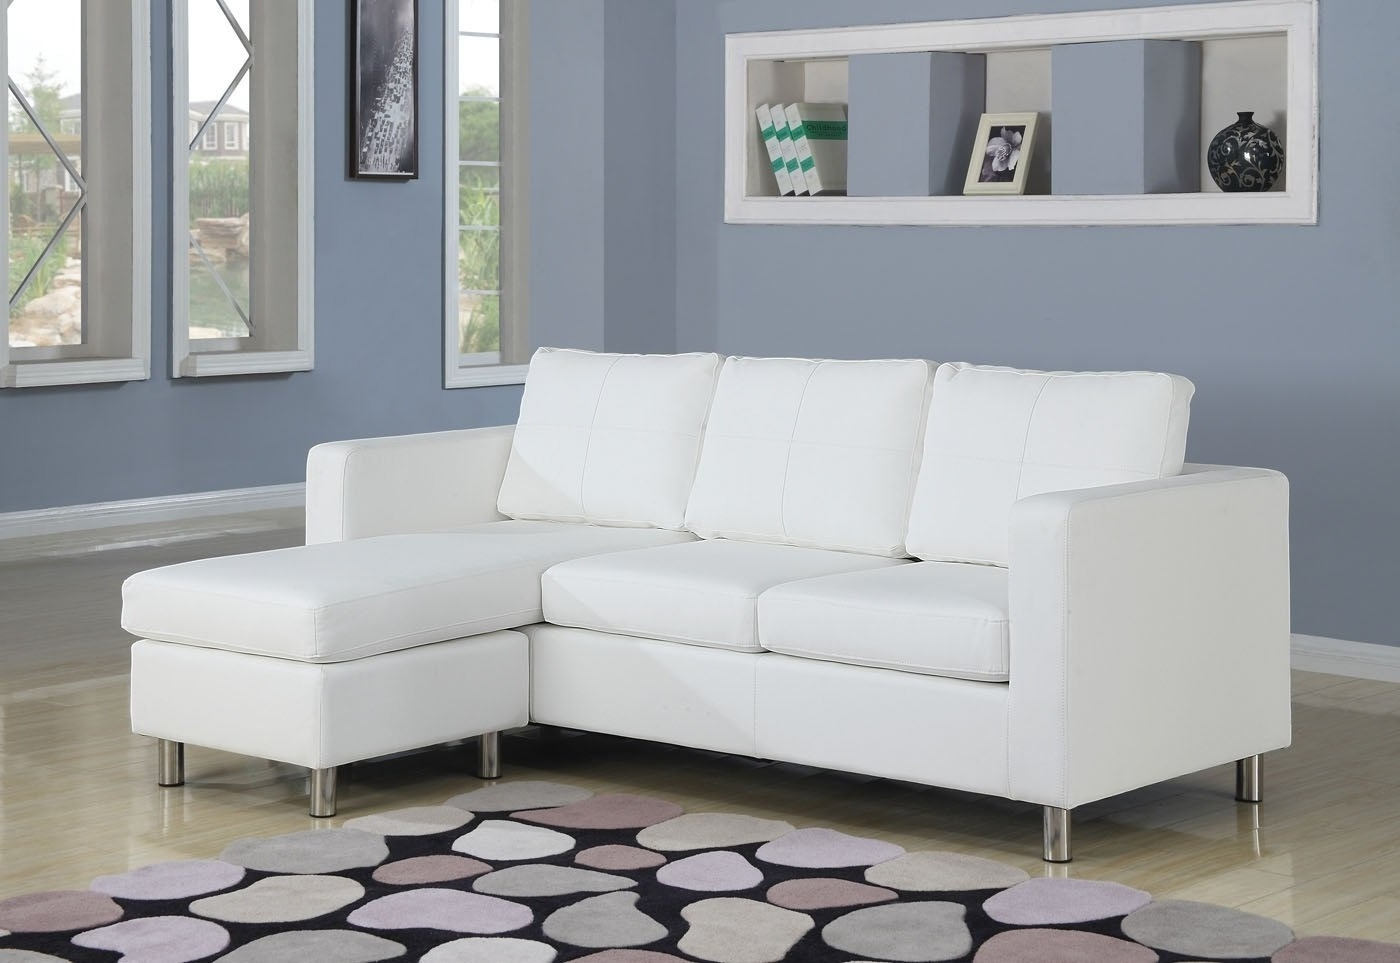 Small Sofas And Chairs Throughout Well Known Sofa : U Shaped Sofa Ikea Darcy Sofa Ashley Furniture Small (View 7 of 15)